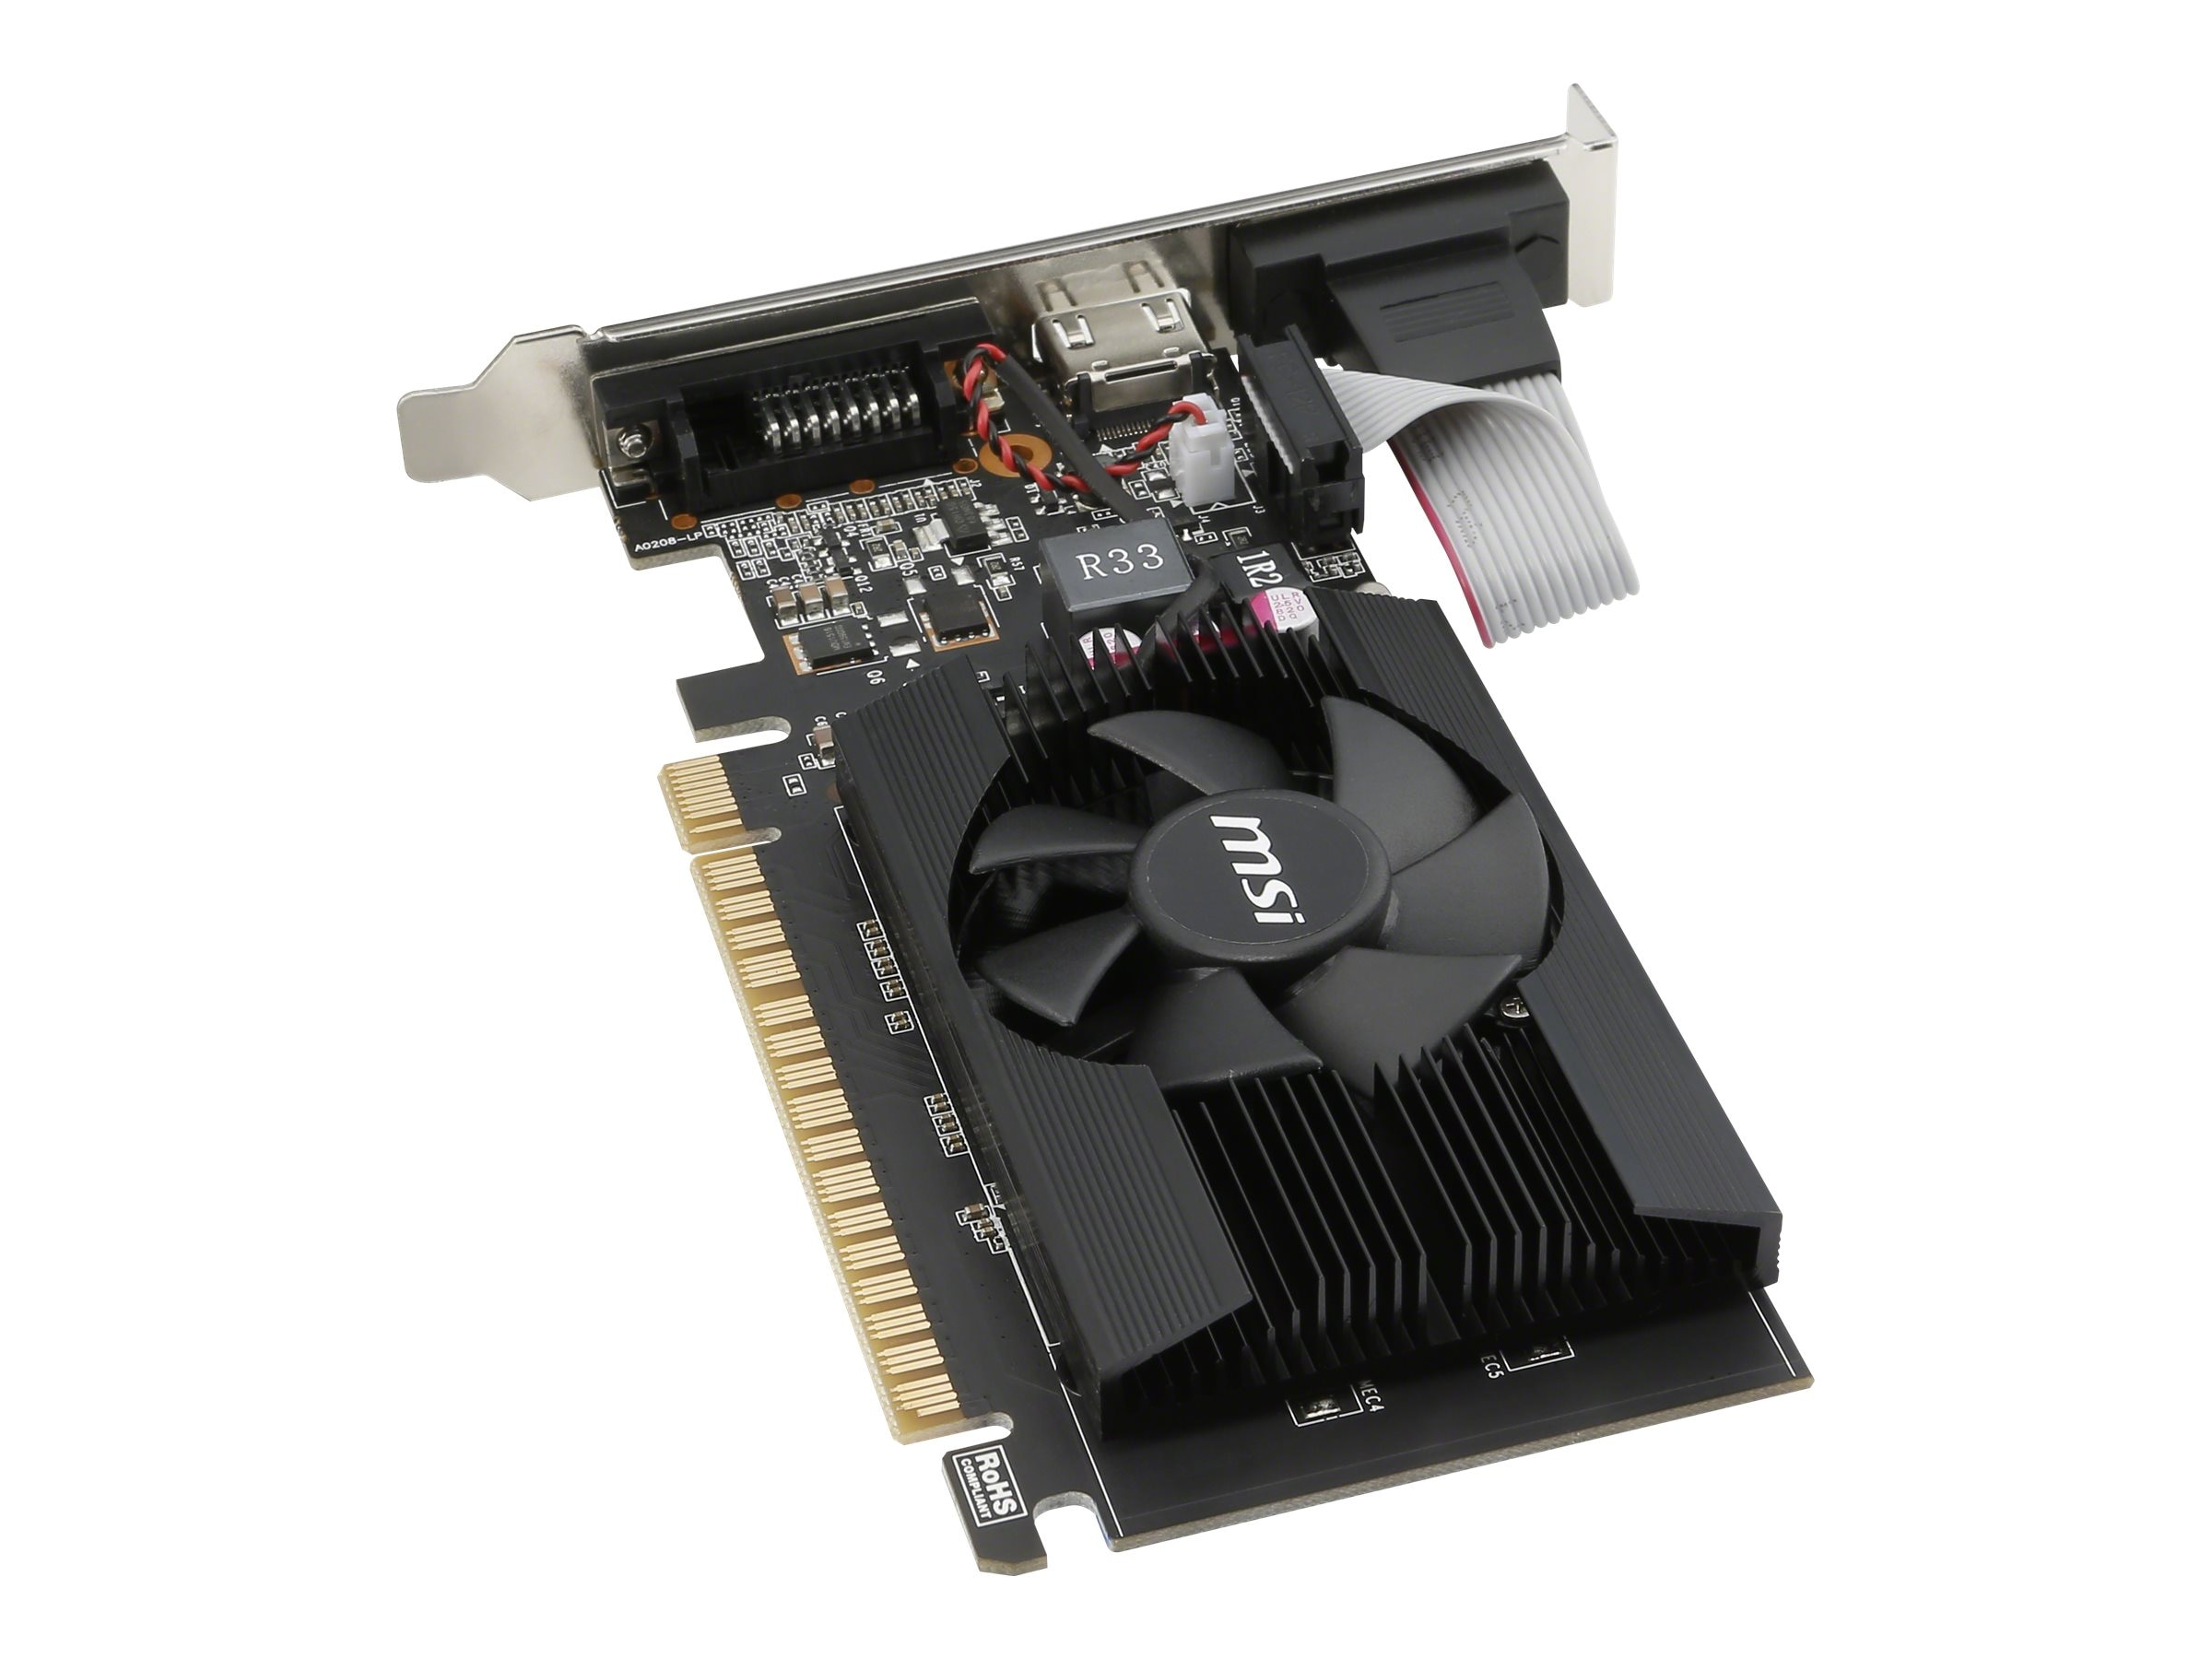 Microstar GeForce GT 710 PCIe 2.0 x16 Graphics Card, 2GB DDR3